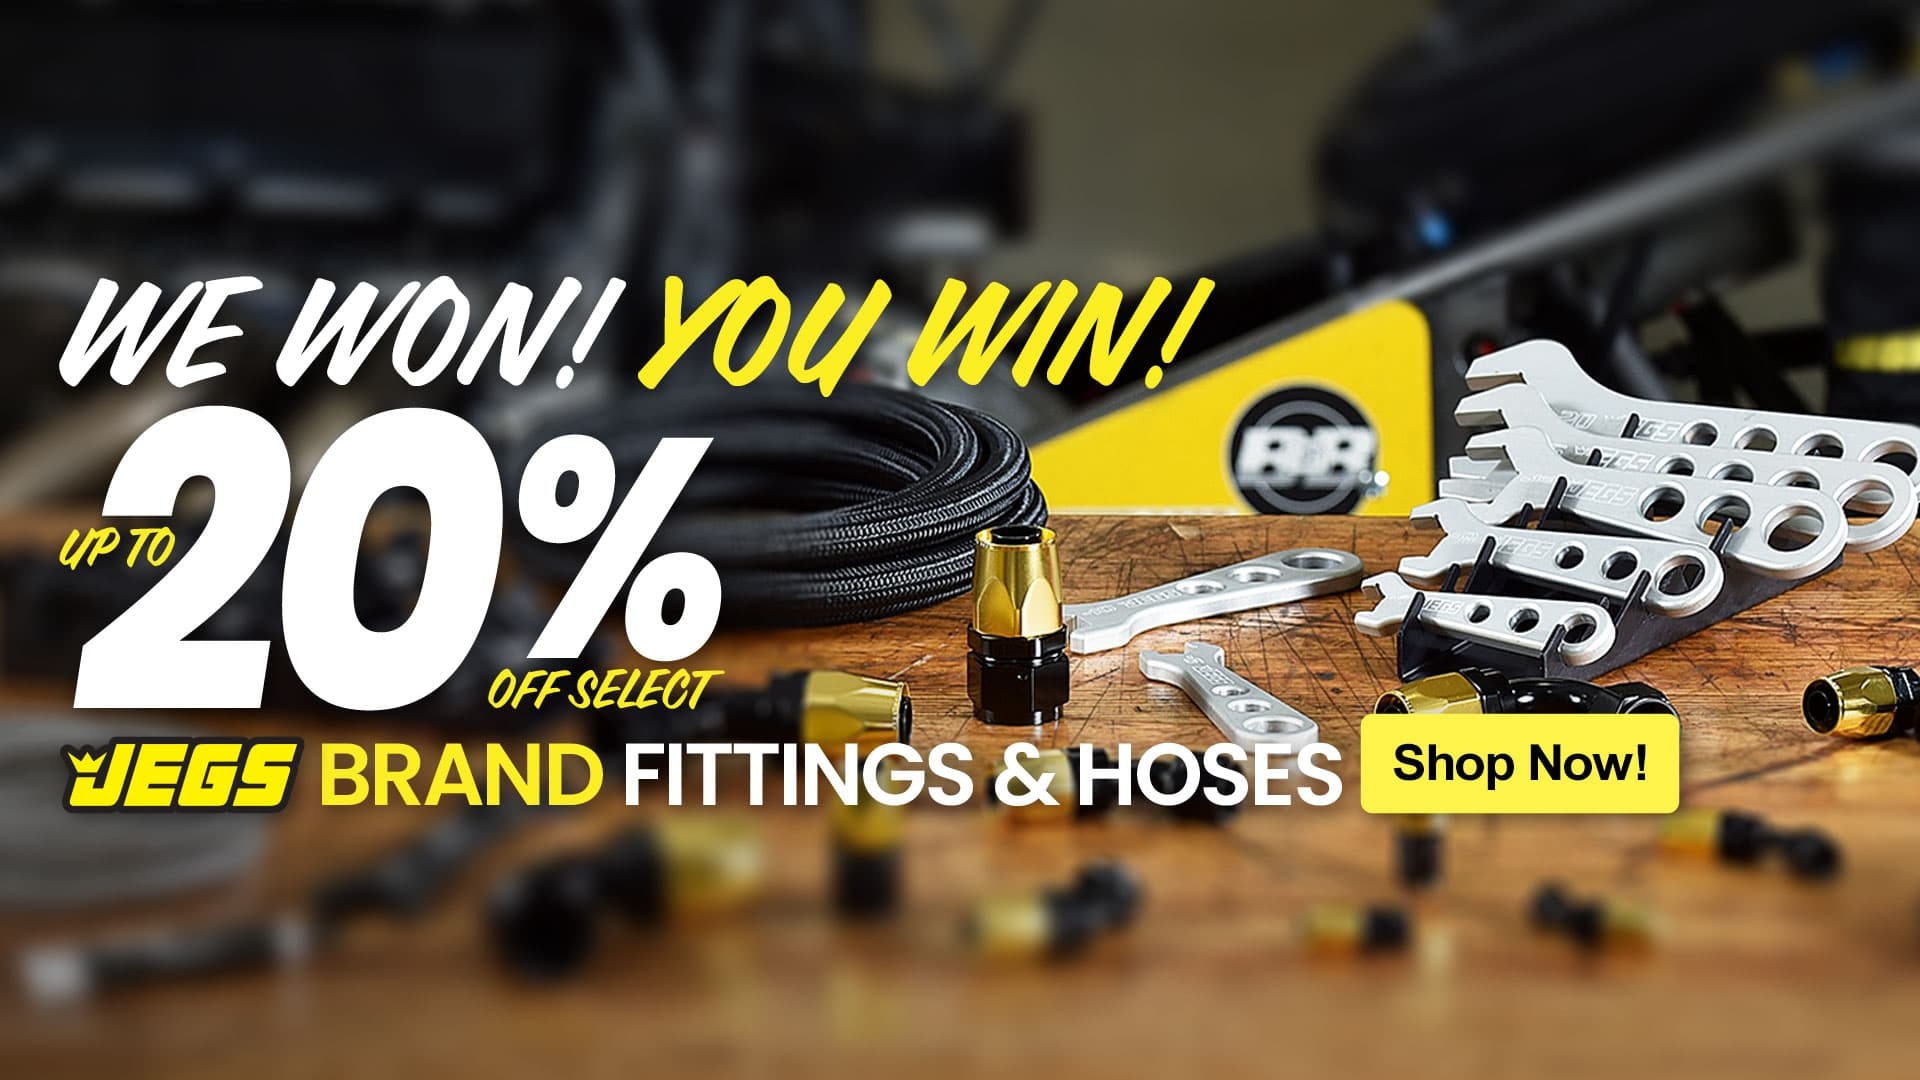 Save 20% on JEGS Brand Fittings and Hoses